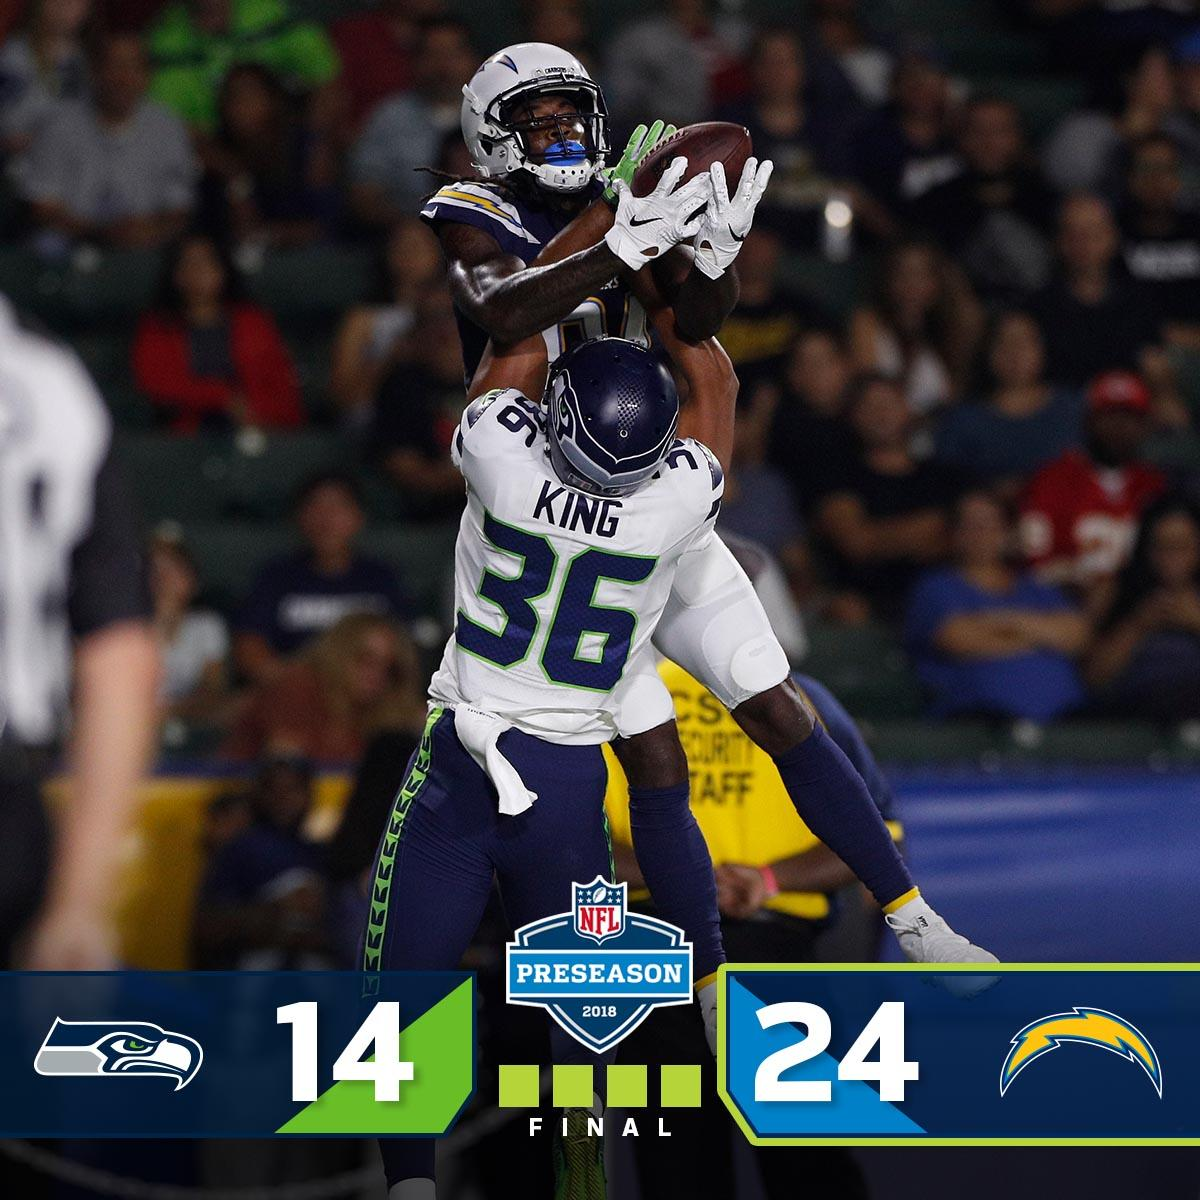 FINAL: The @Chargers WIN!  #SEAvsLAC #NFLPreseason https://t.co/q03qEITE7d